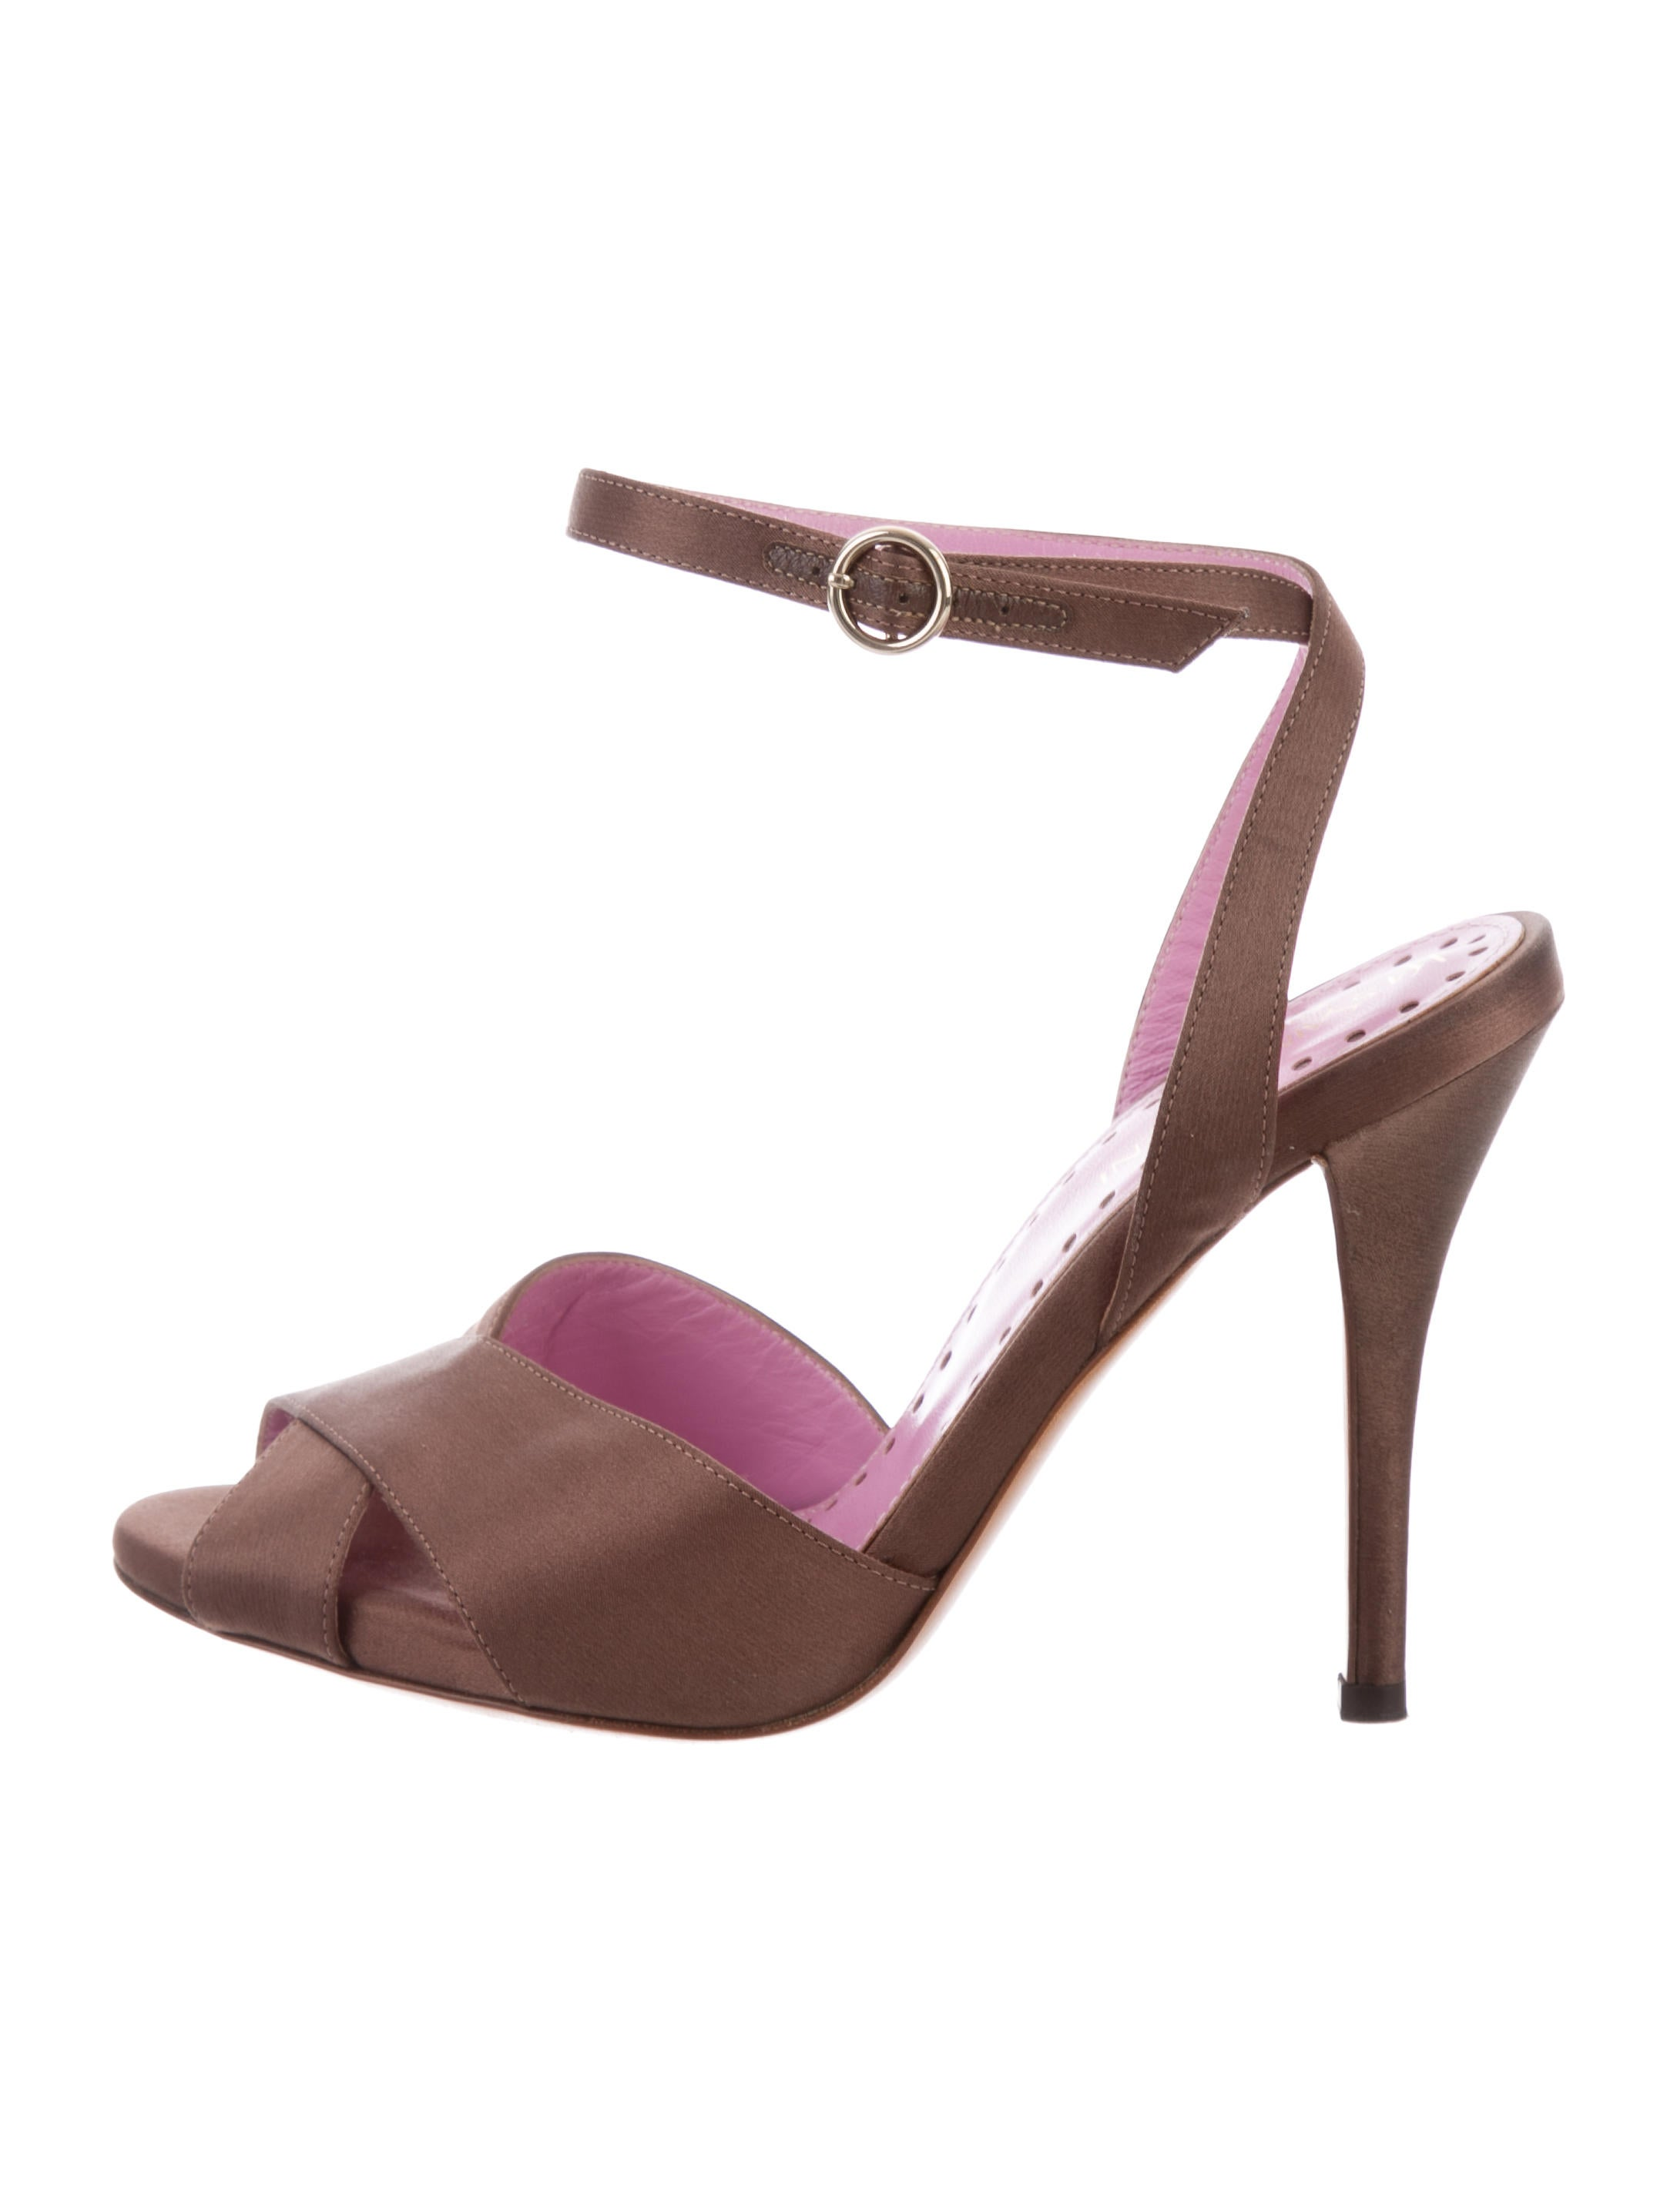 Yves Saint Laurent Crossover Satin Sandals latest collections cheap price free shipping ebay buy cheap choice whd8IqPF